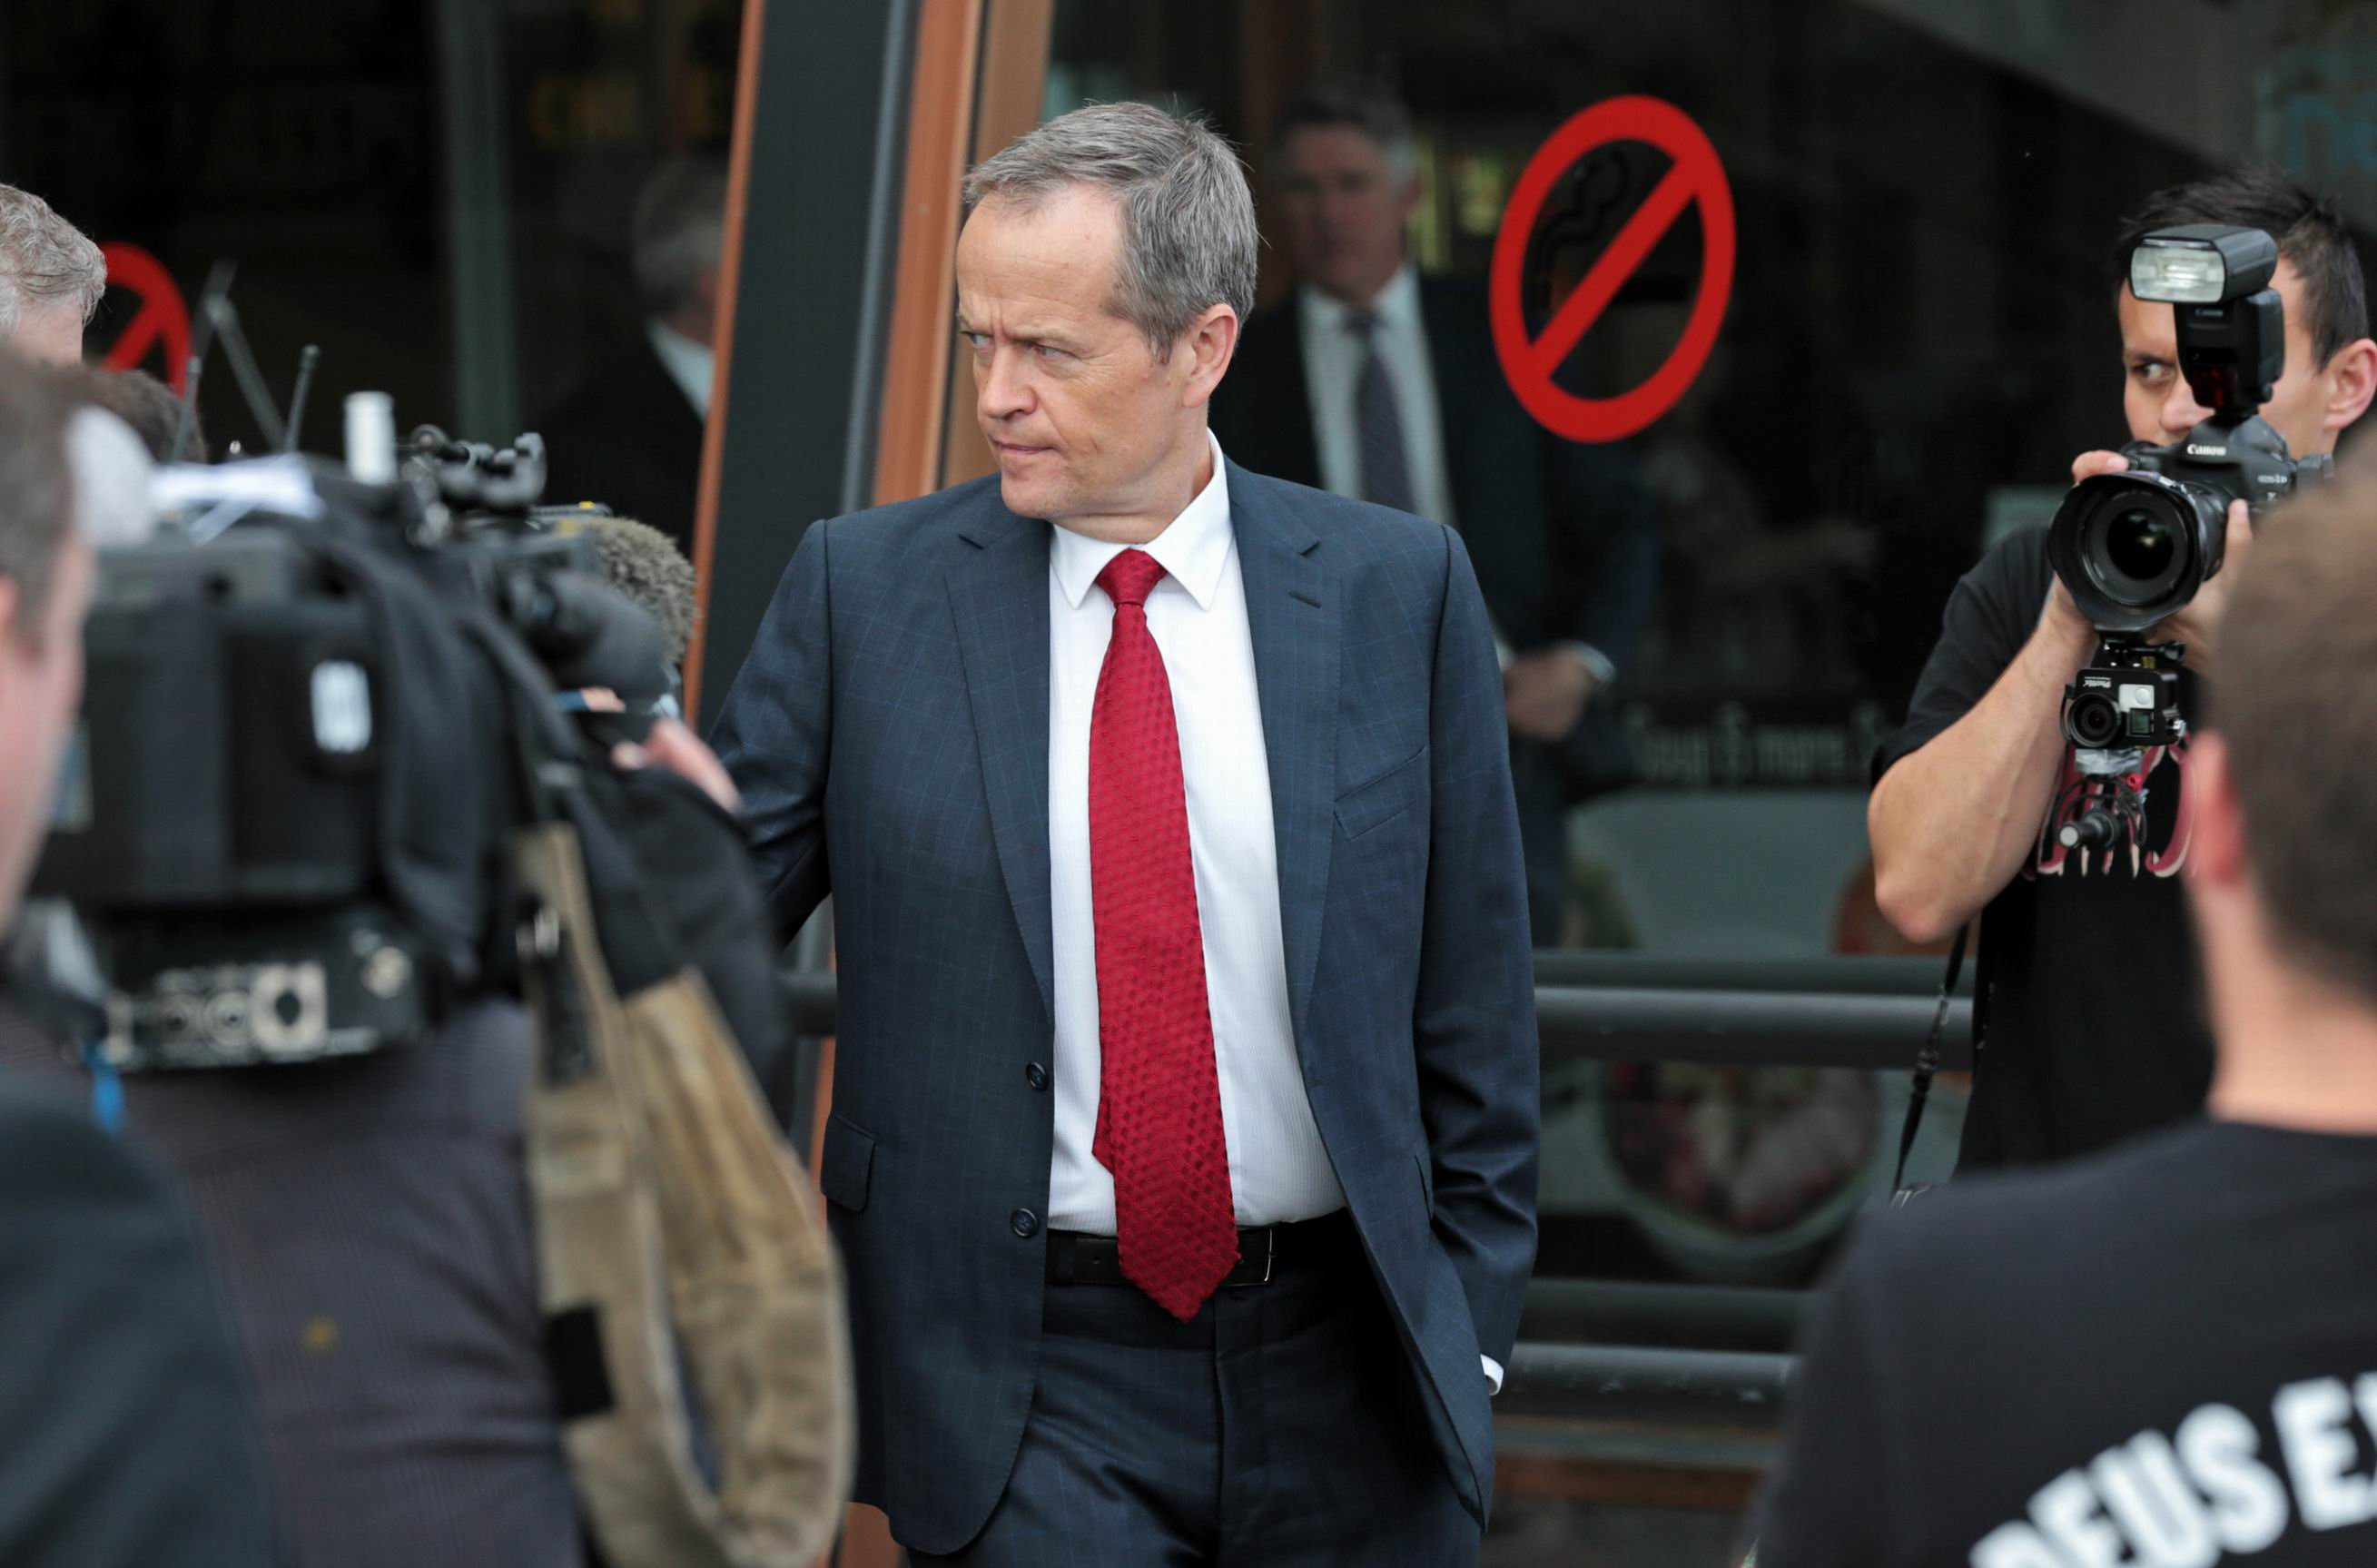 Bill Shorten at the Centrepoint Shopping Centre in Midland.  Bill Shorten comes to Midland.